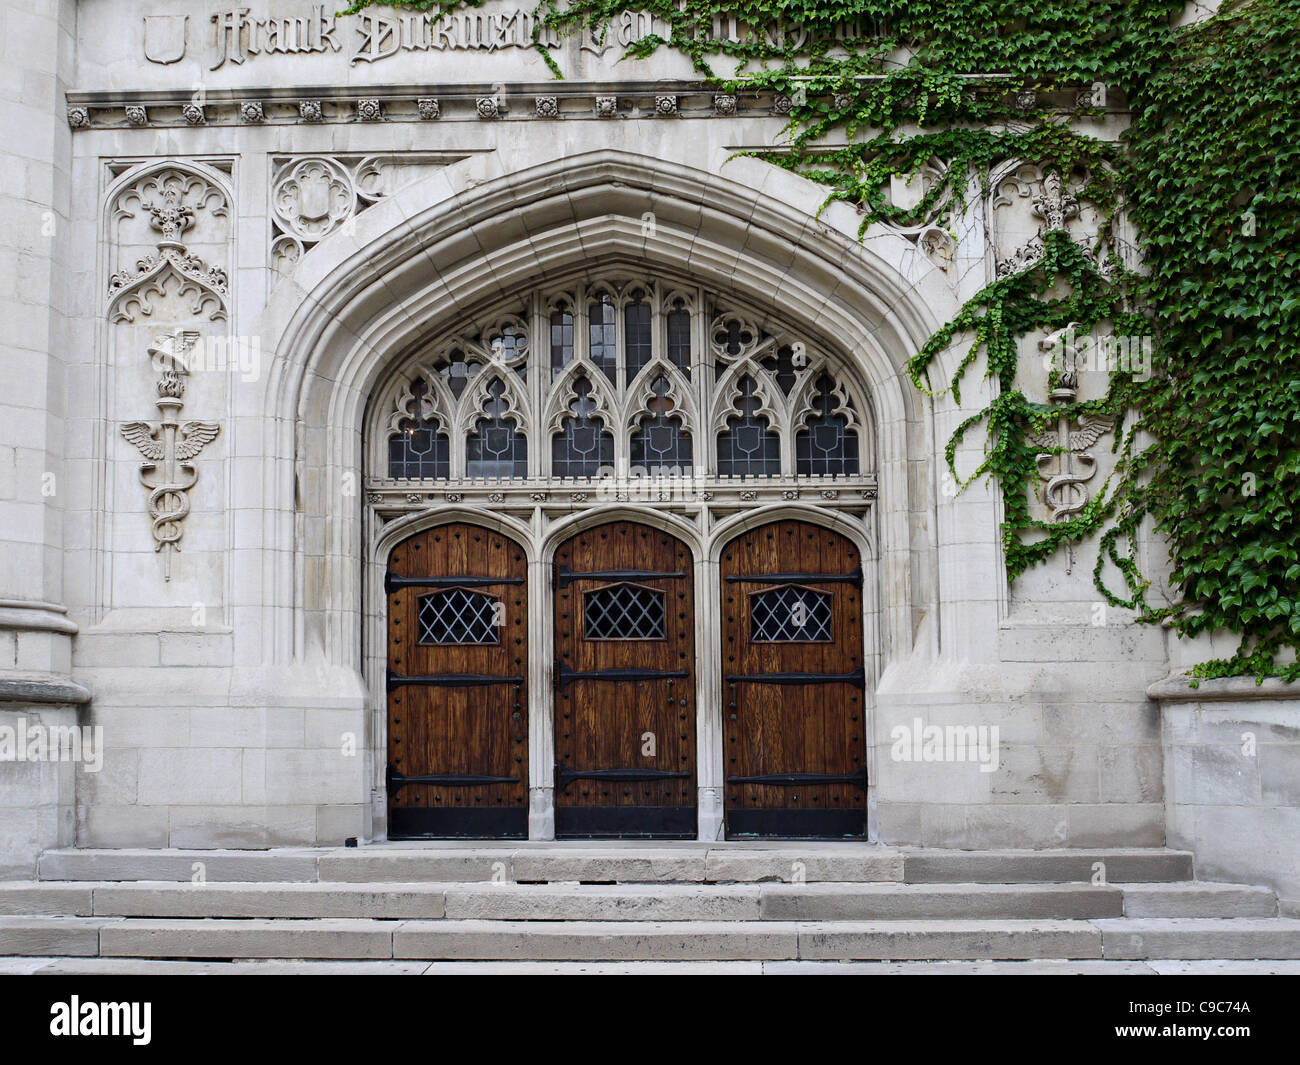 University of Chicago wooden doors & University of Chicago wooden doors Stock Photo: 40221674 - Alamy